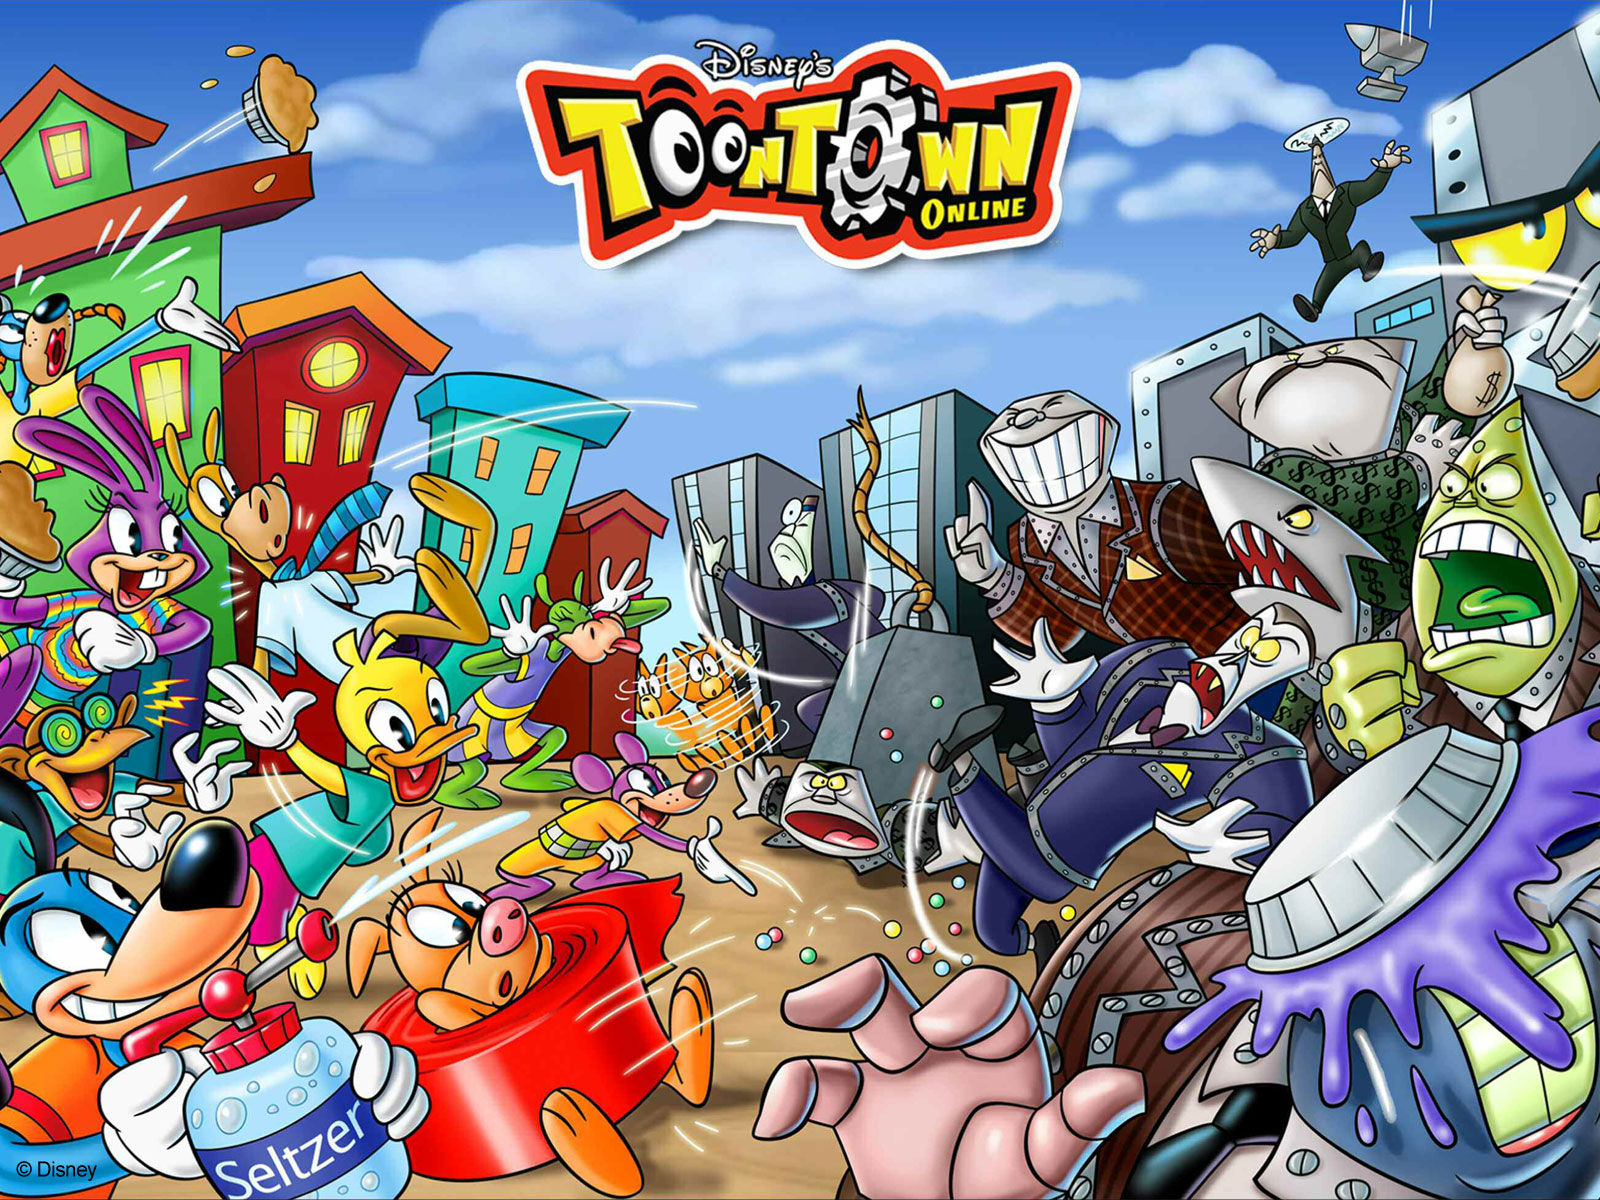 Toontown Wallpaper